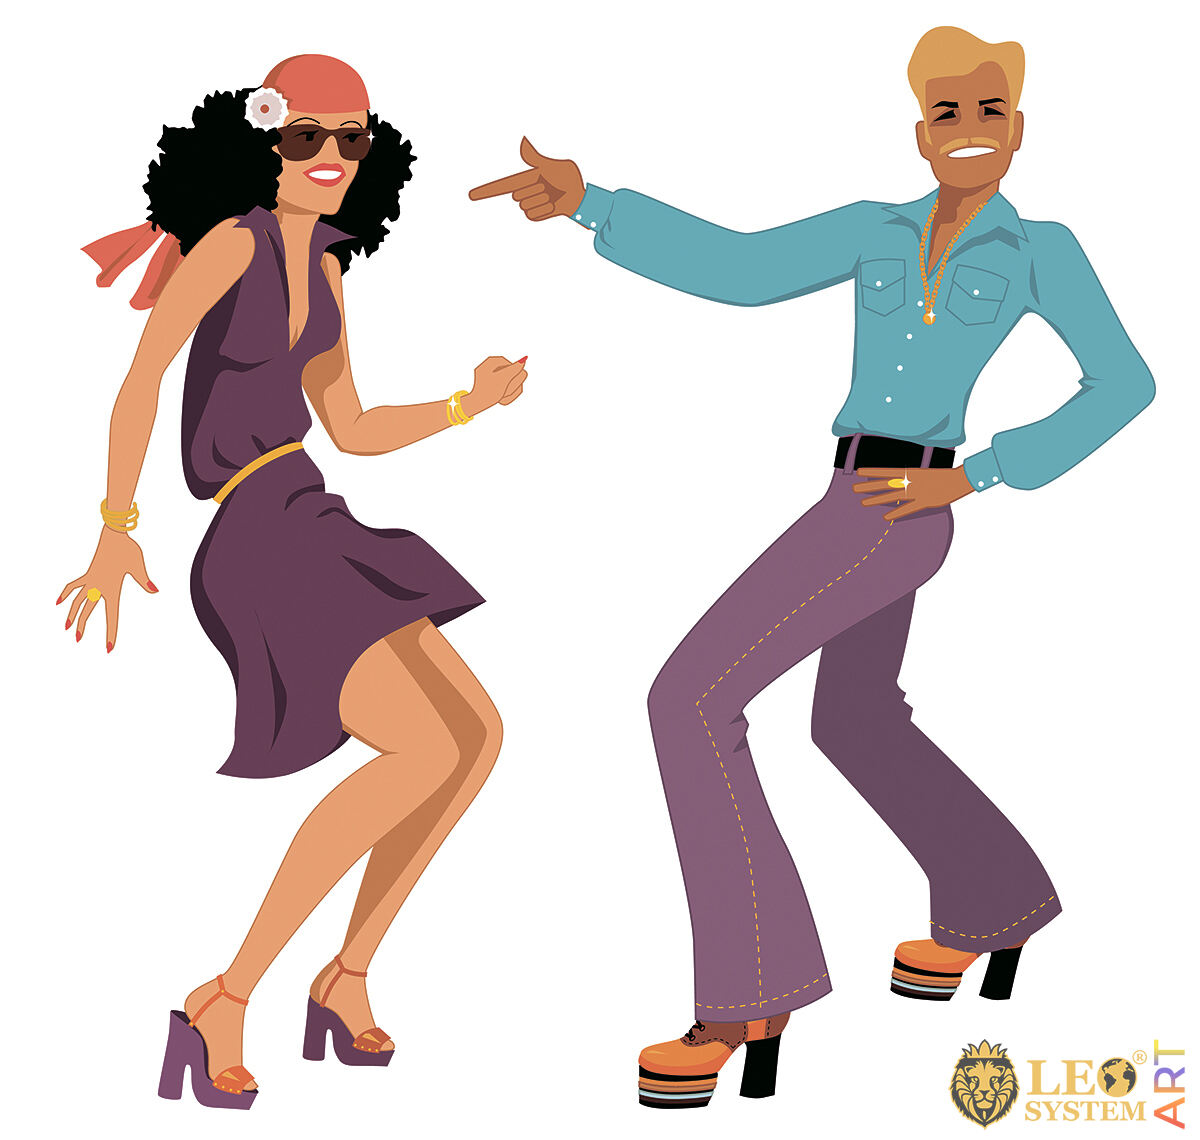 Attractive man and woman dancing cheerfully